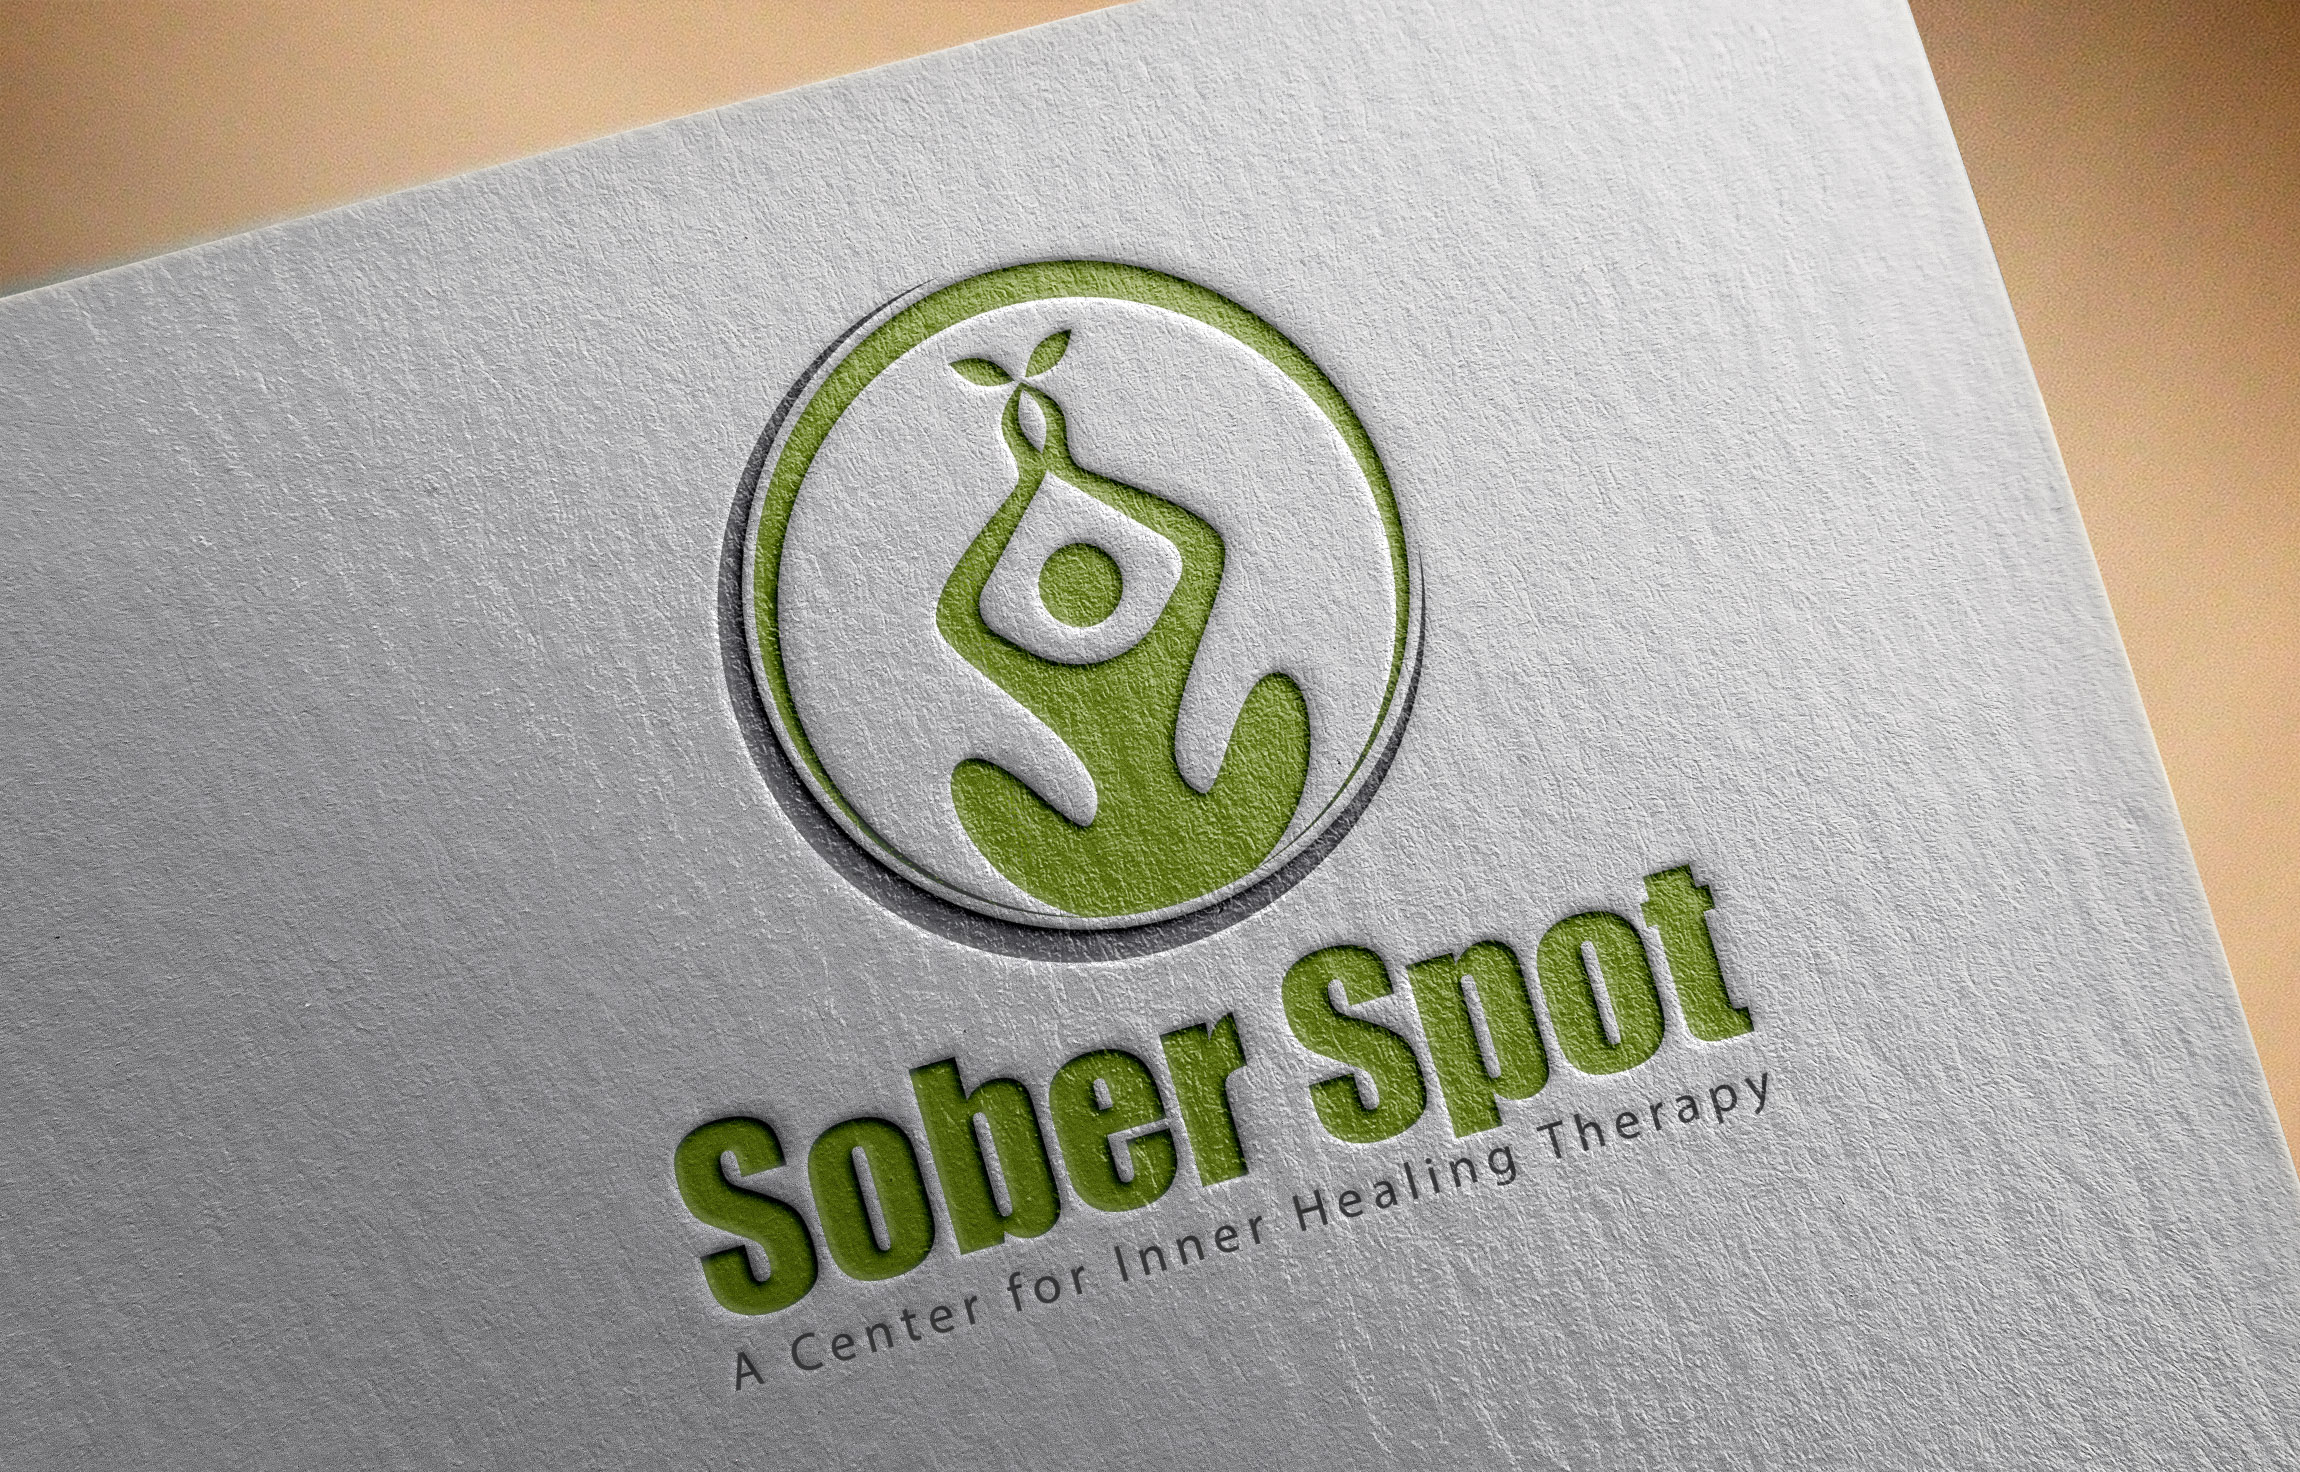 Logo Design by MD SHOHIDUL ISLAM - Entry No. 89 in the Logo Design Contest Unique Logo Design Wanted for Sober Spot A Center for Inner Healing Therapy.